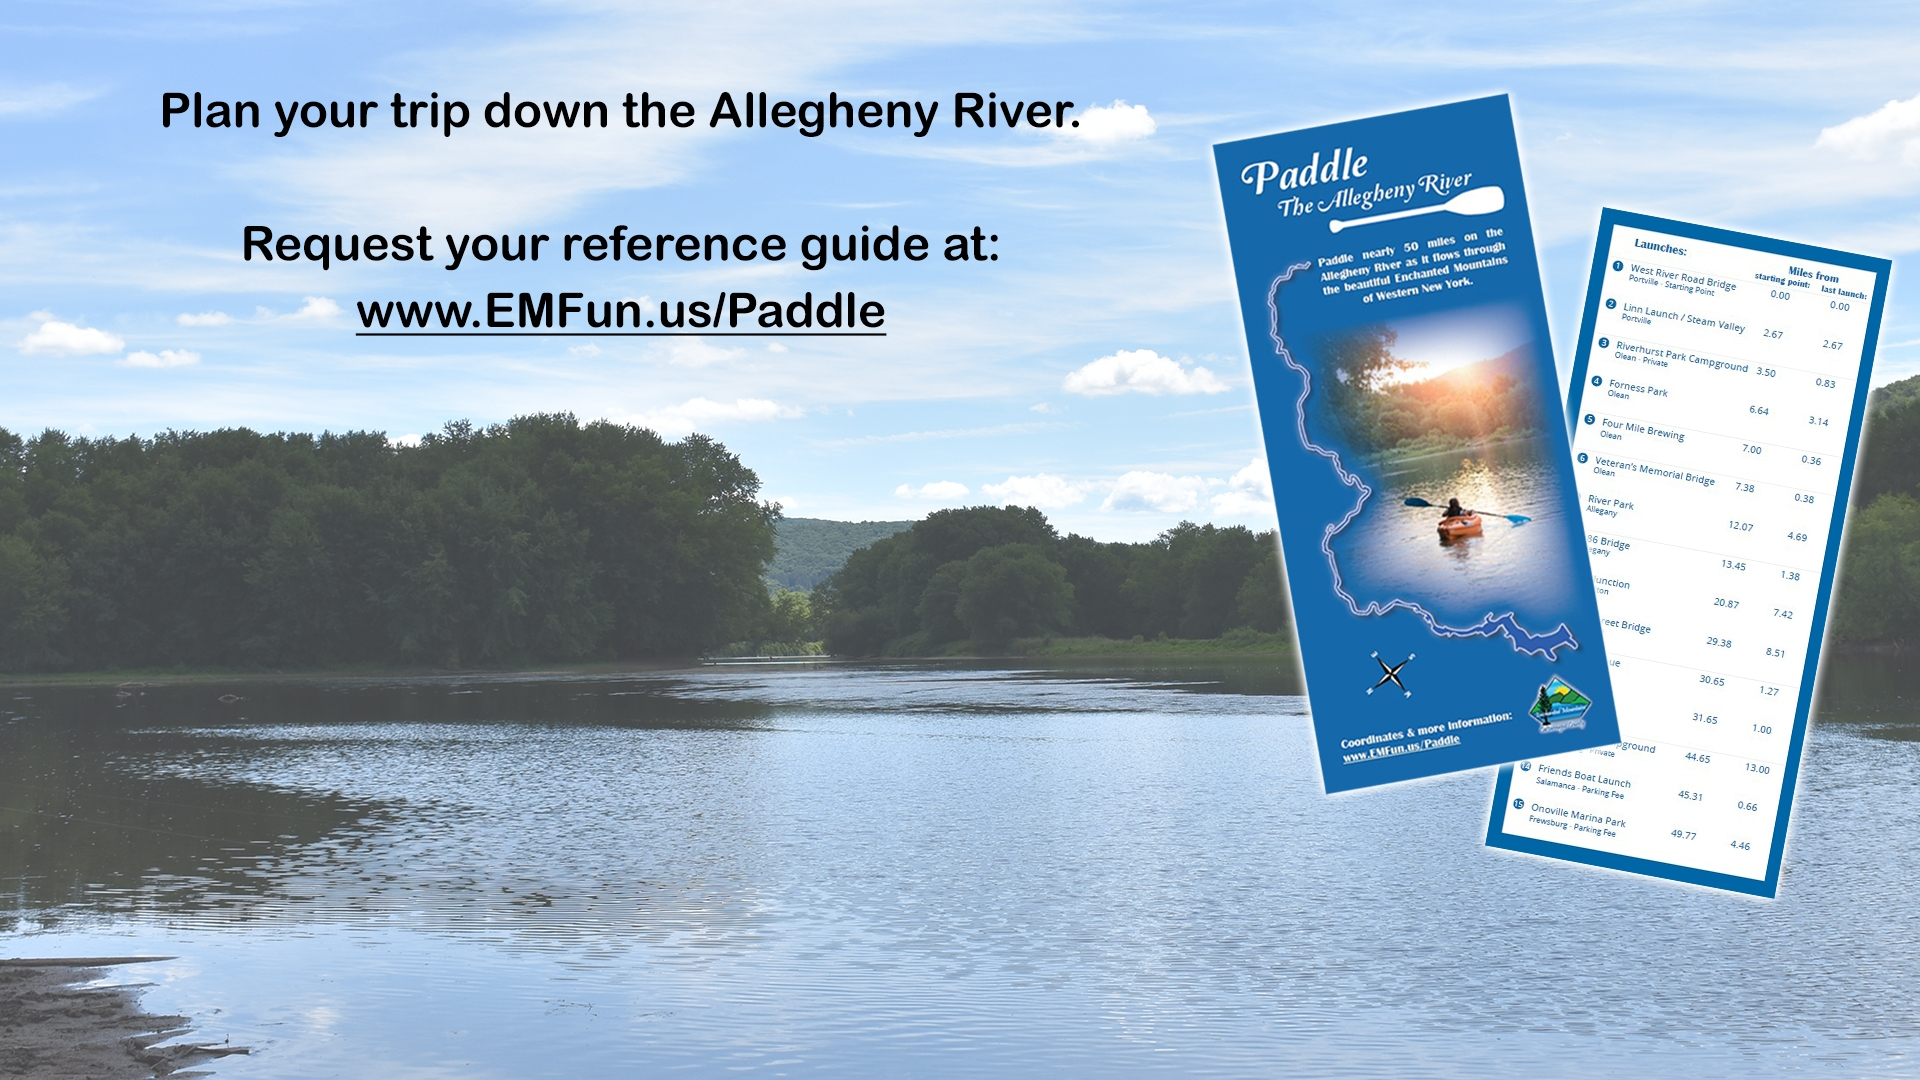 Request Paddle The Allegheny River Rack Card